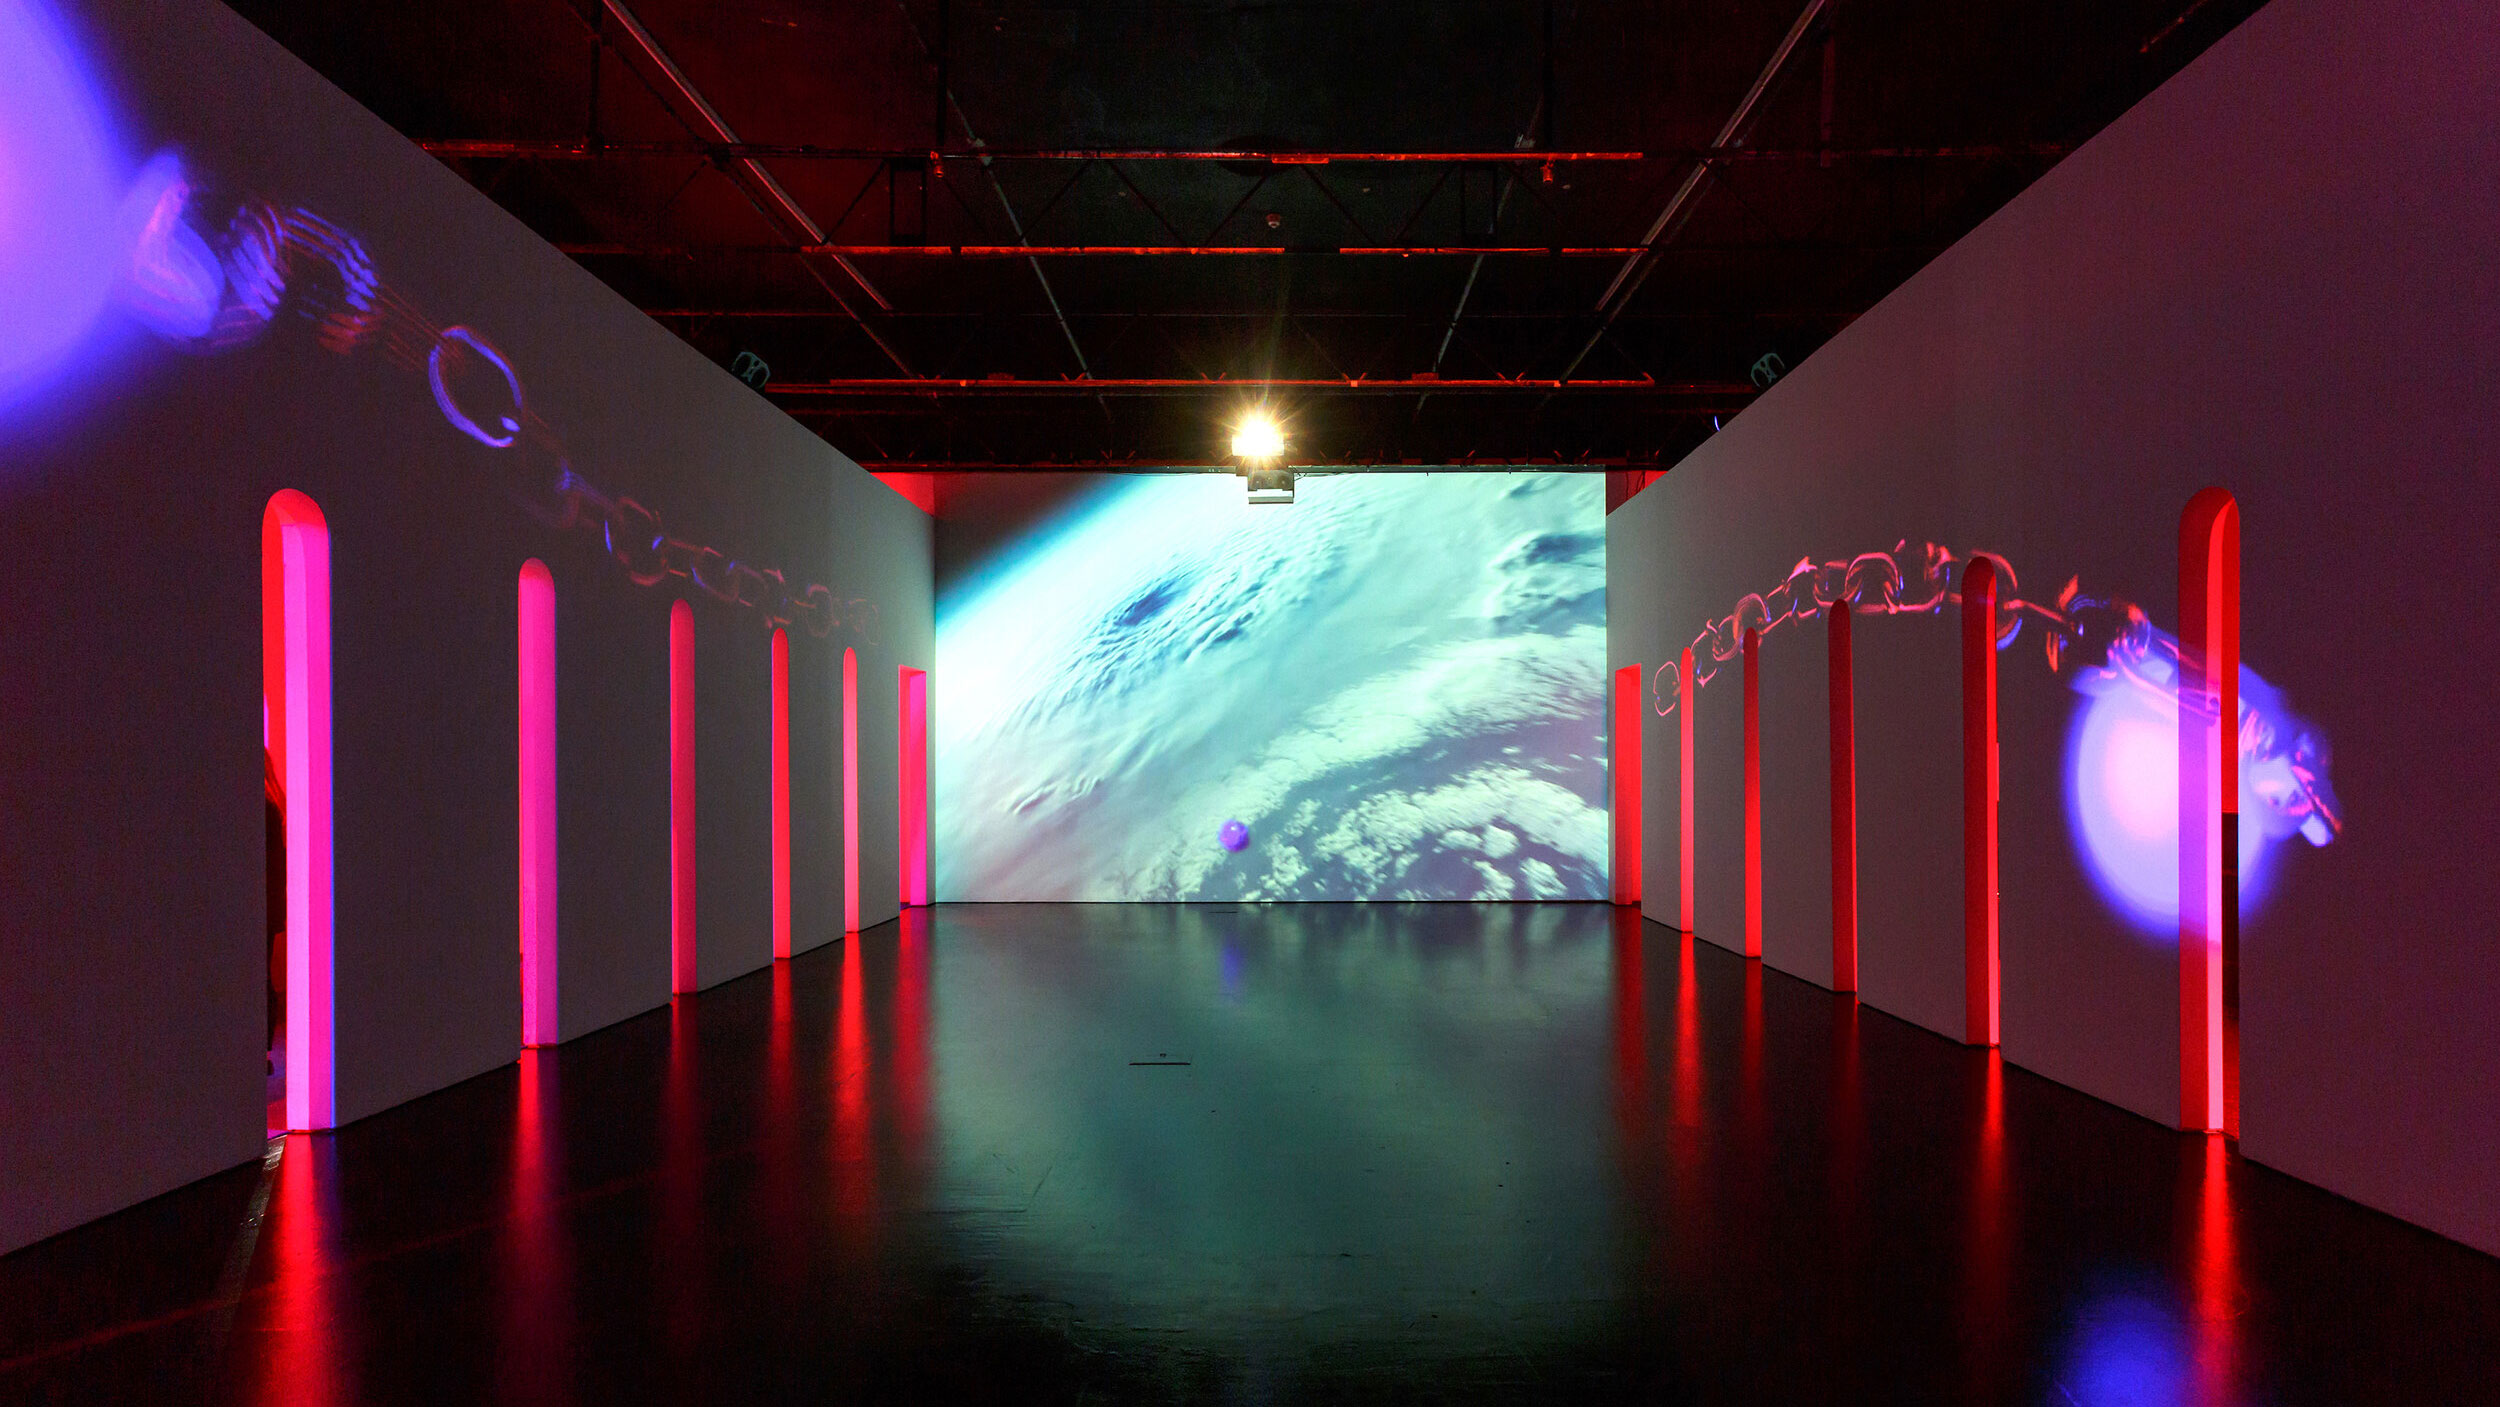 Rachel Rossin, Stalking The Trace, 2019. Exhibition installation view Zabludowicz collection, London. Courtesy Zabludowicz Collection, London. Photo: Tim Bowditch.